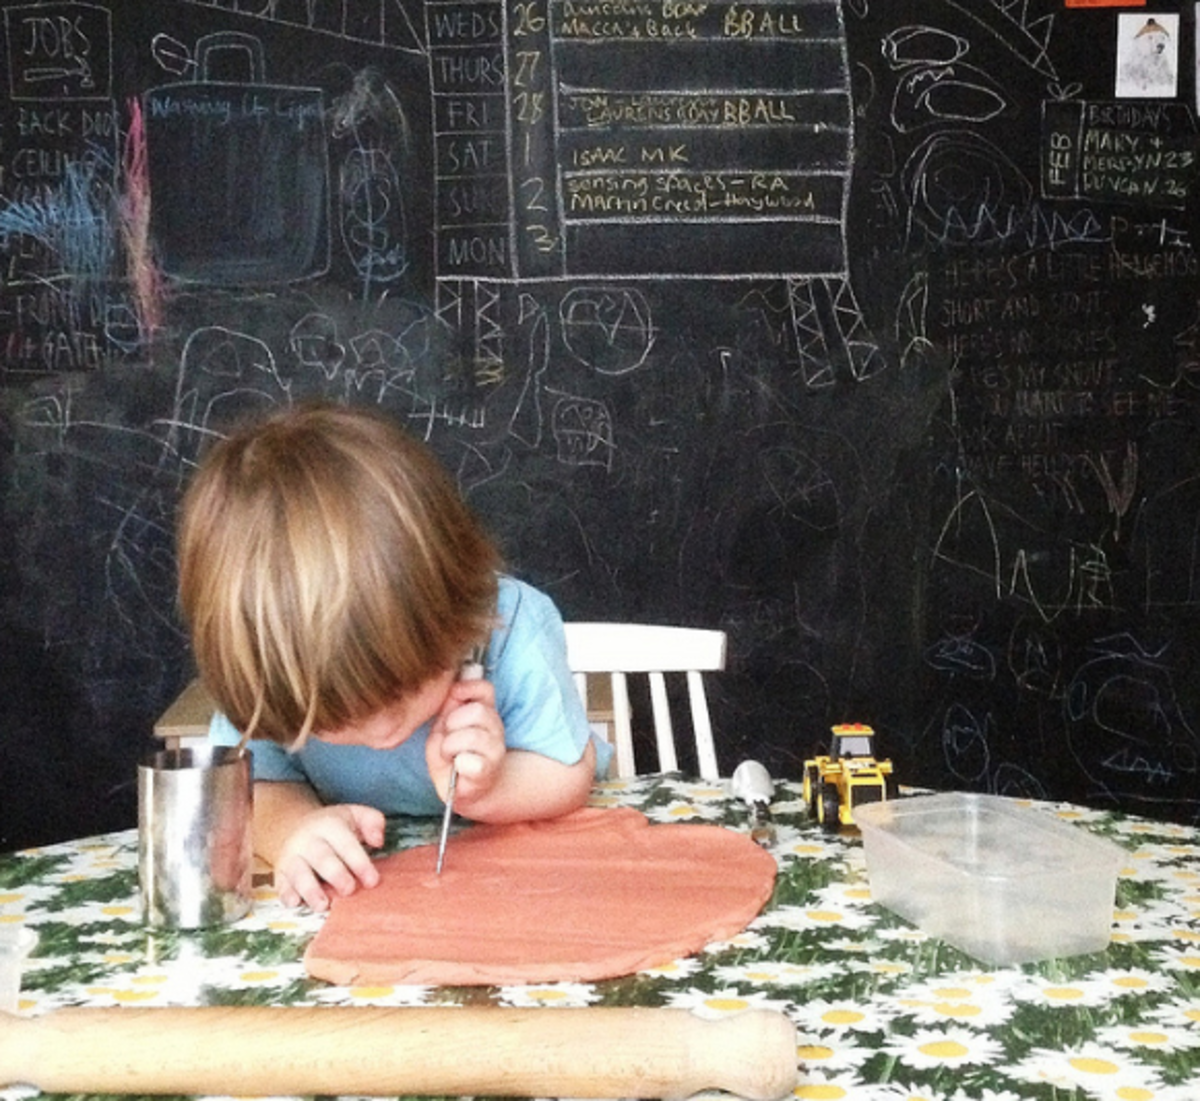 Working with play-dough builds strong fingers and hands and enhances fine motor skills.